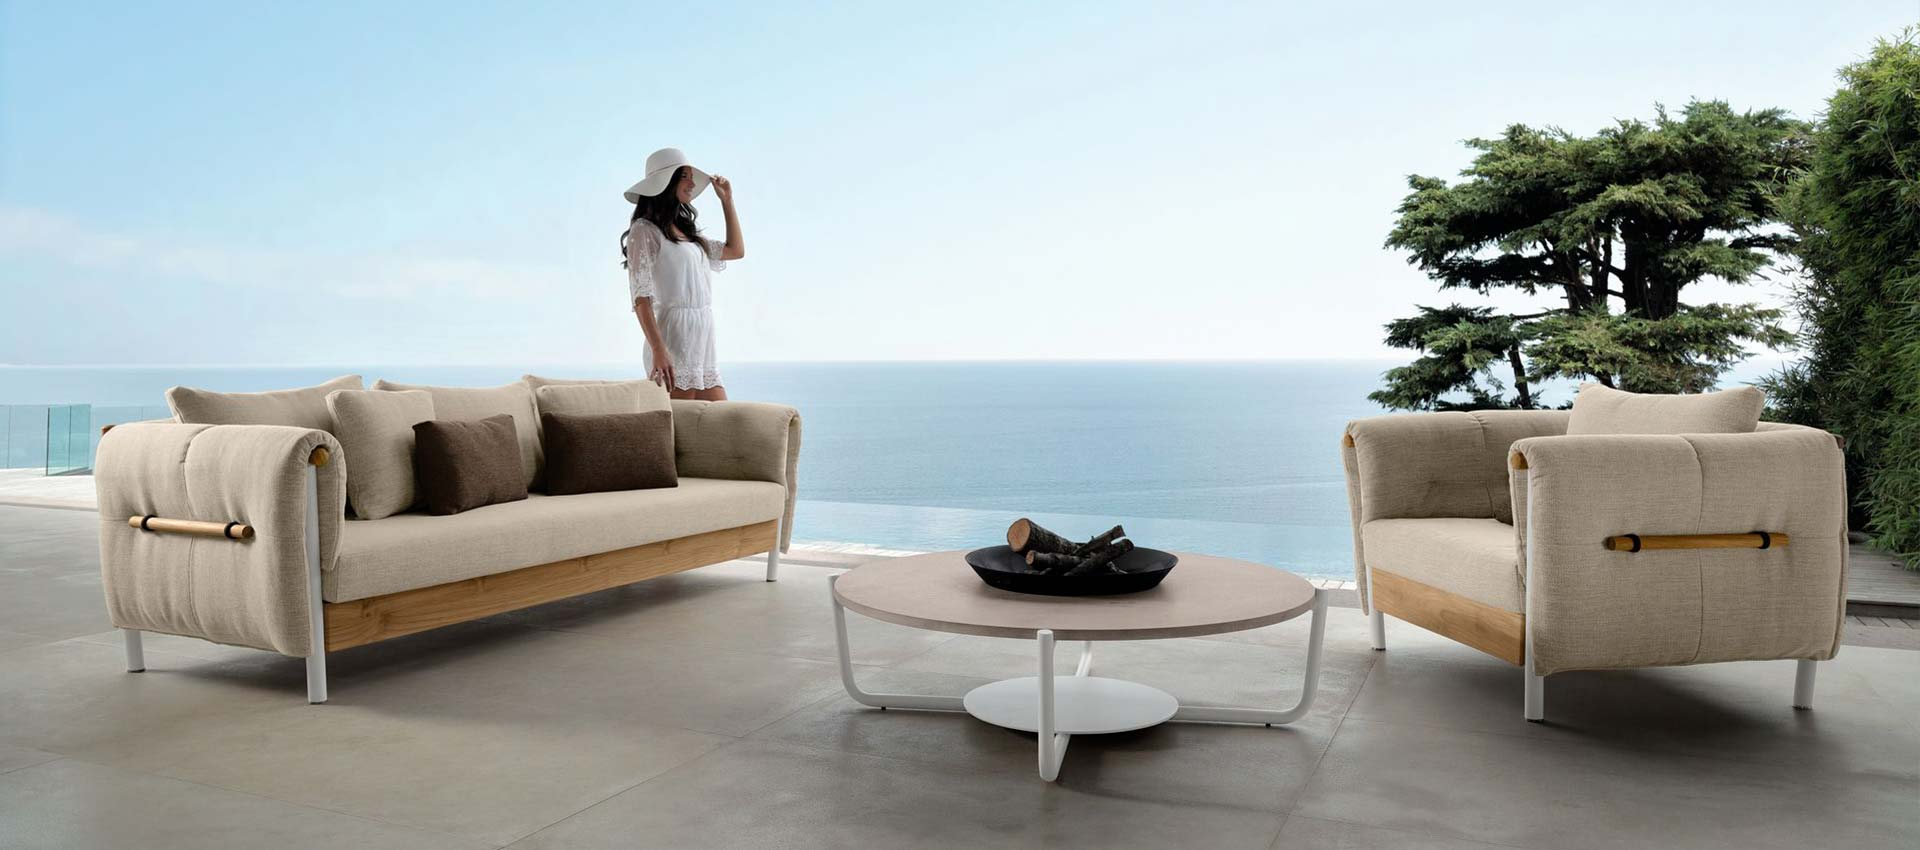 Outdoor Armchairs - Sofas - Coffee Tables